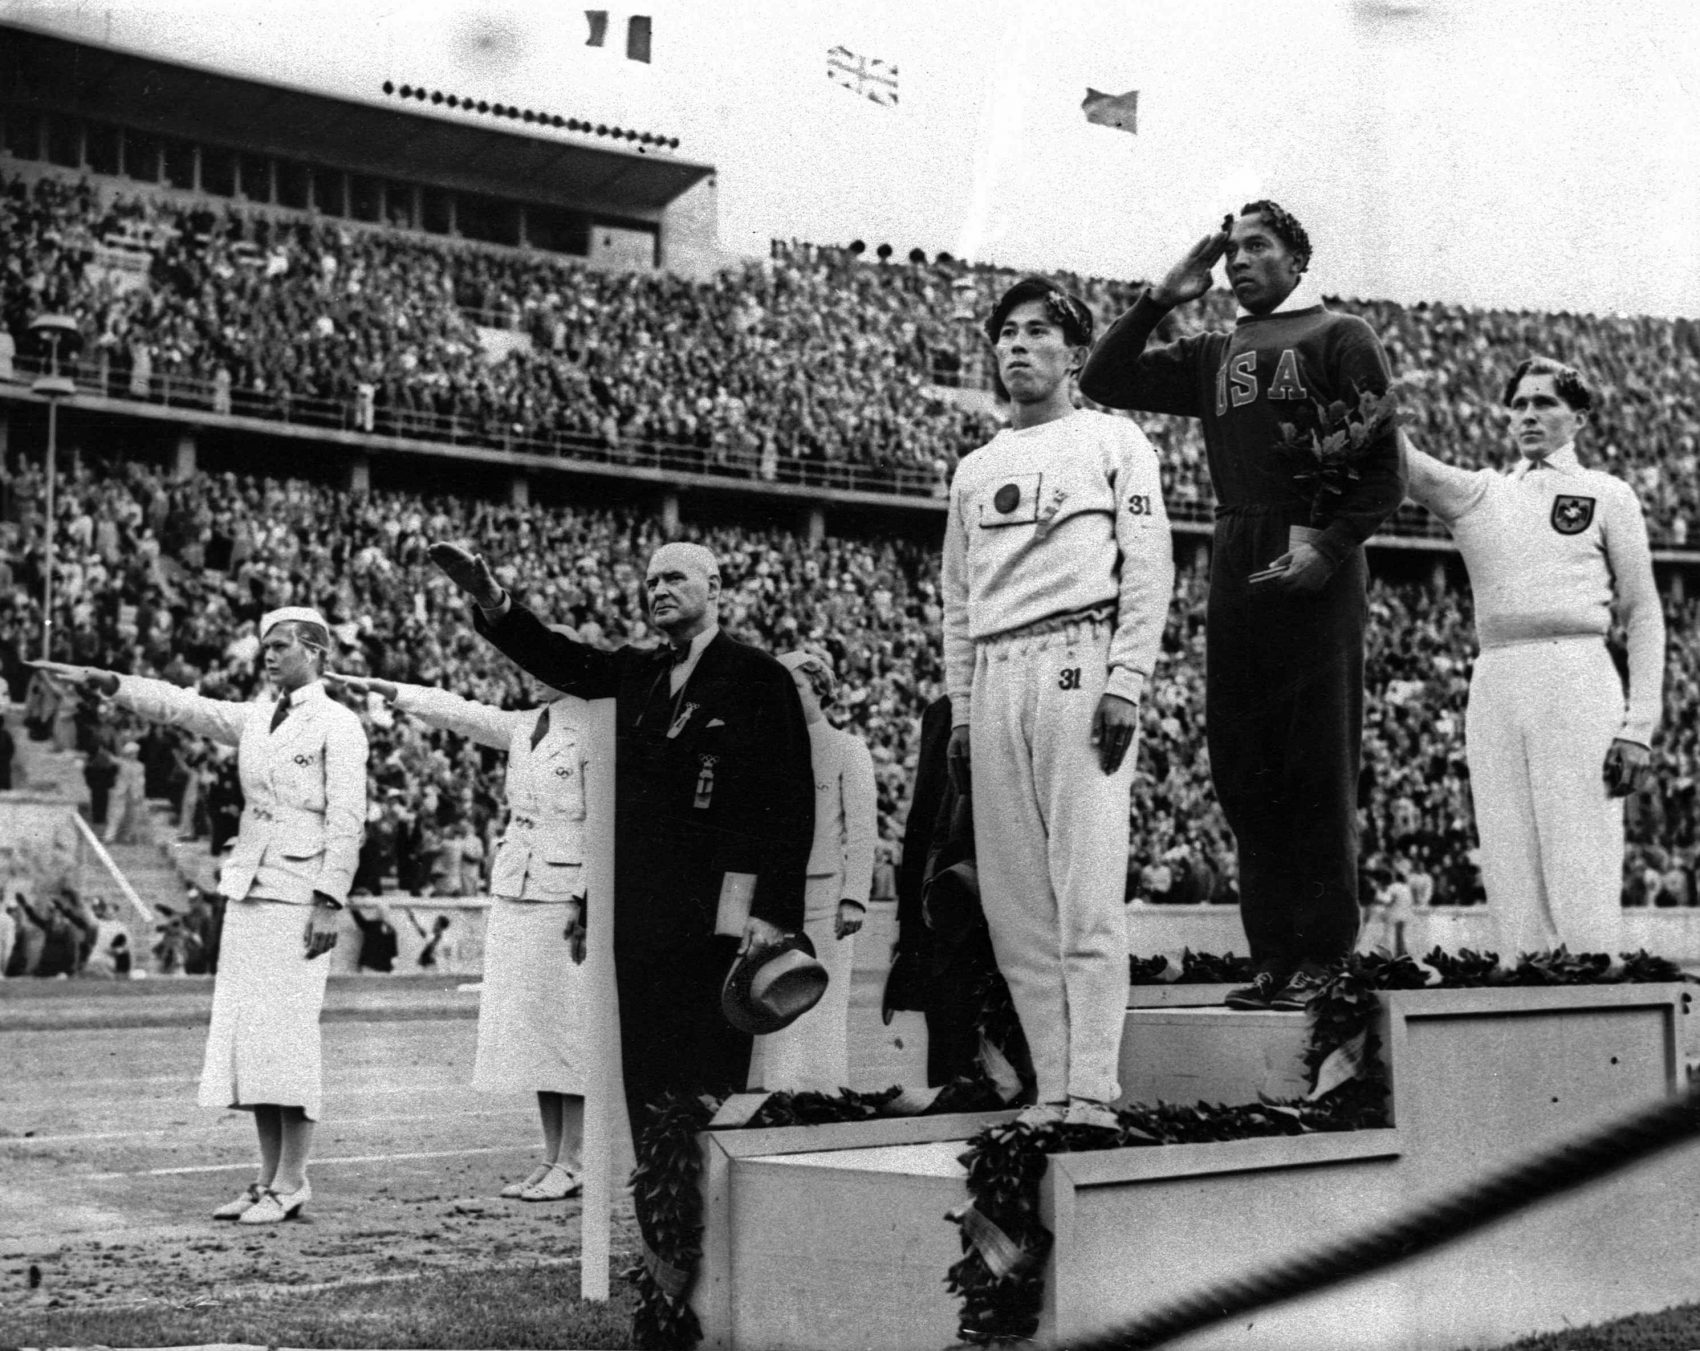 In this Aug. 11, 1936 file photo, Olympic broad jump medalists salute during the medals ceremony at the Summer Olympics in Berlin. From left on podium are: bronze medalist Jajima of Japan, gold medalist Jesse Owens of the United States and silver medalist Lutz Long of Germany. (AP Photo)